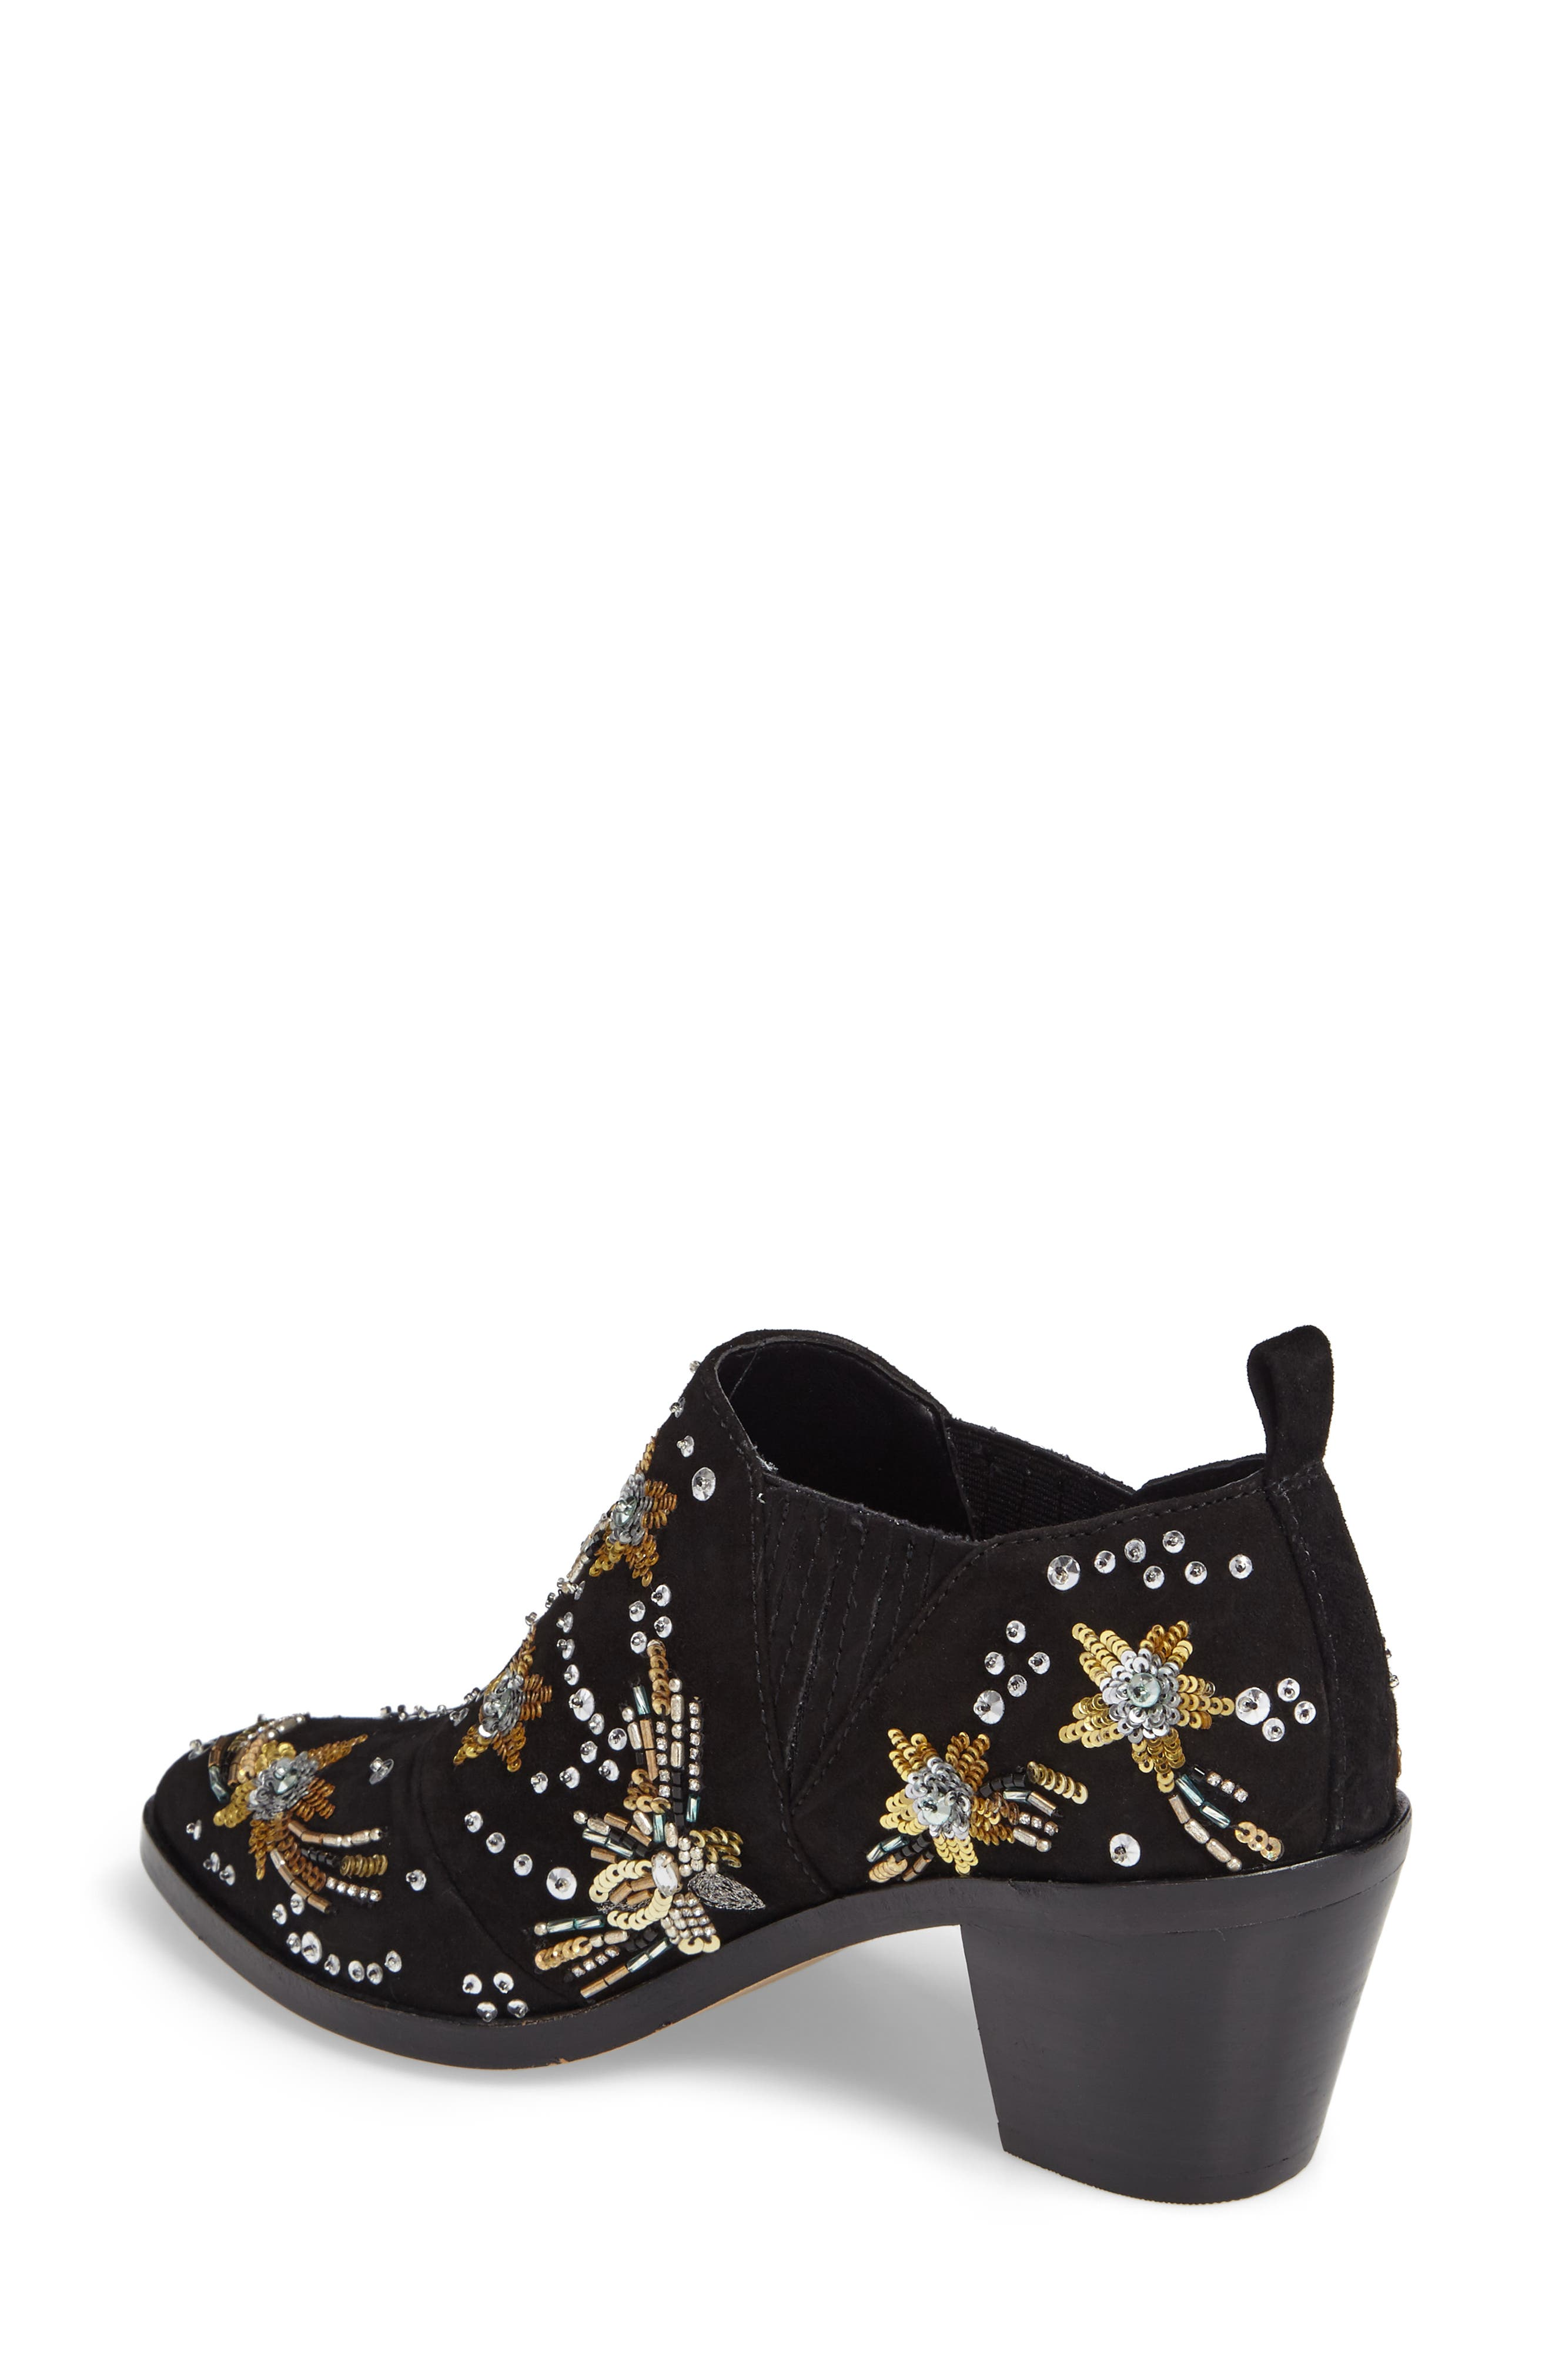 Lucy Embellished Bootie,                             Alternate thumbnail 2, color,                             Black